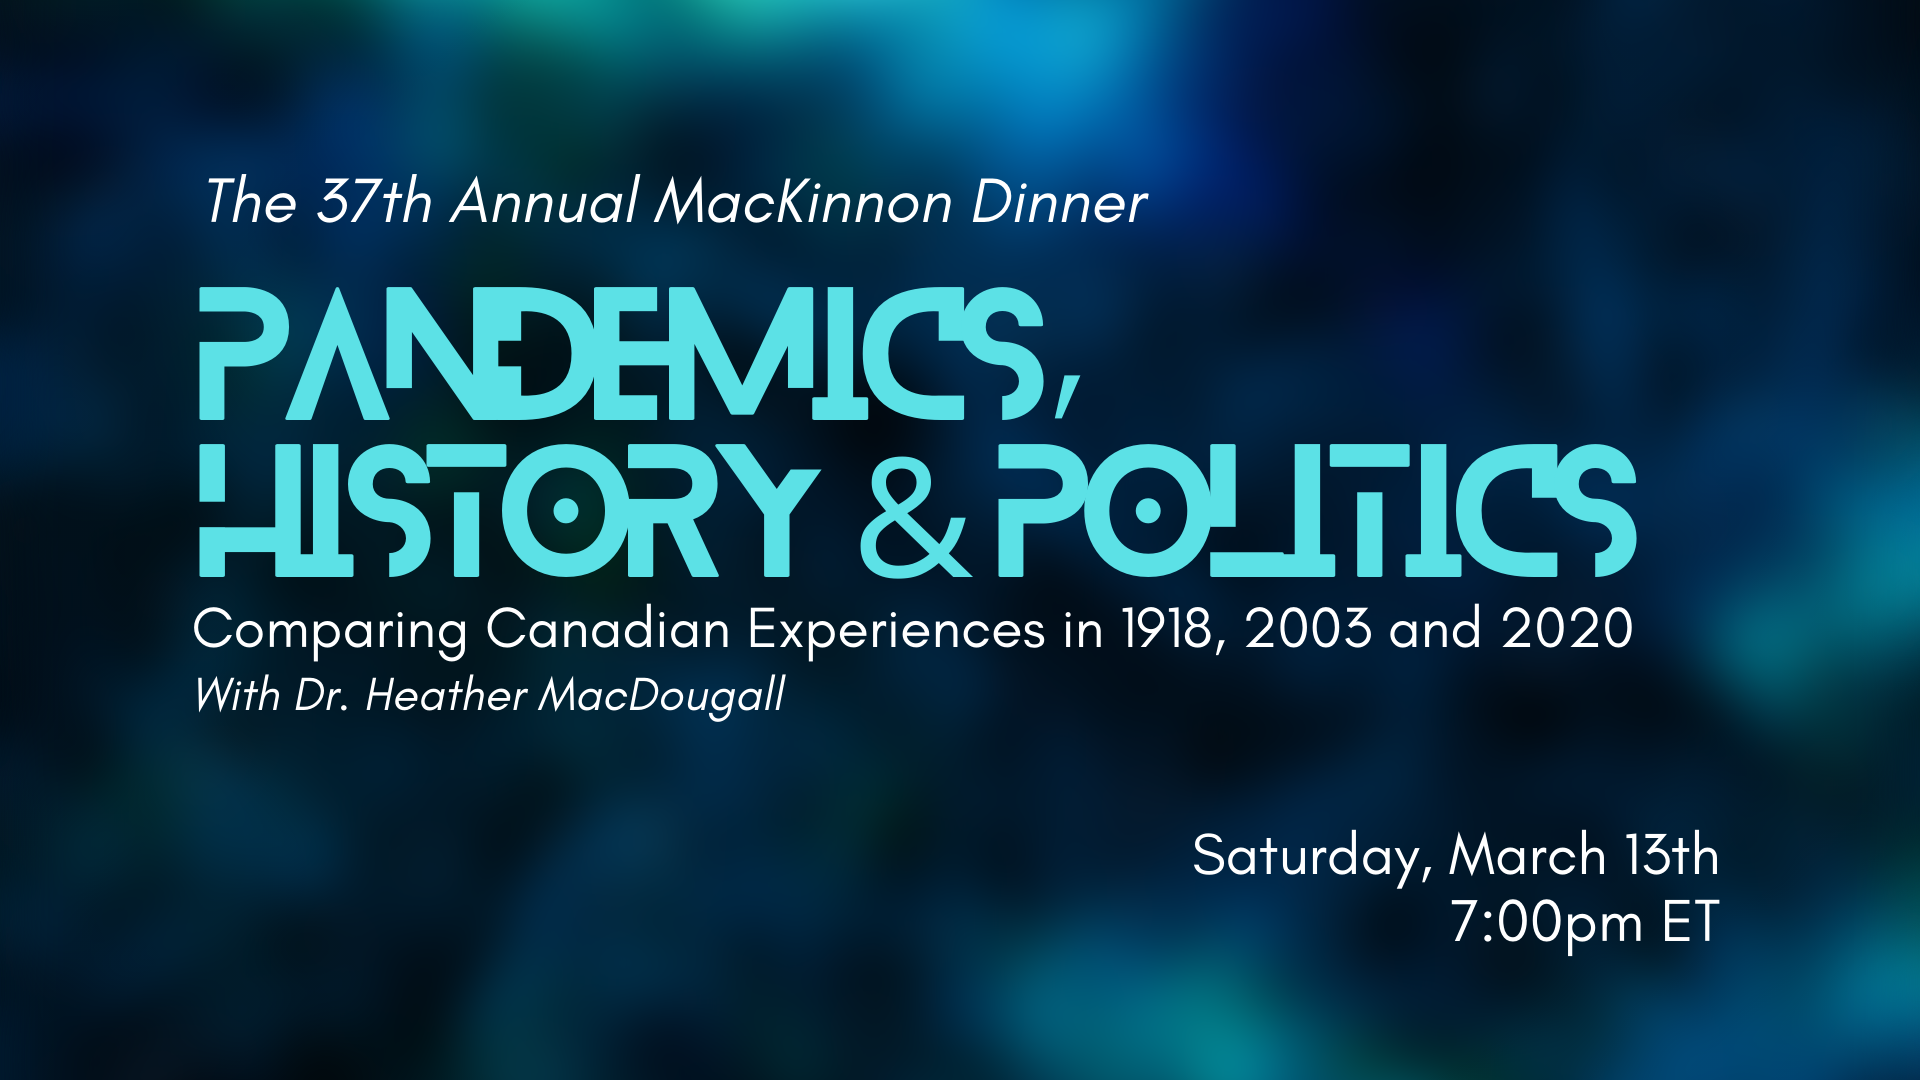 Pandemics, History and Politics, the 37th Annual MacKinnon Dinner